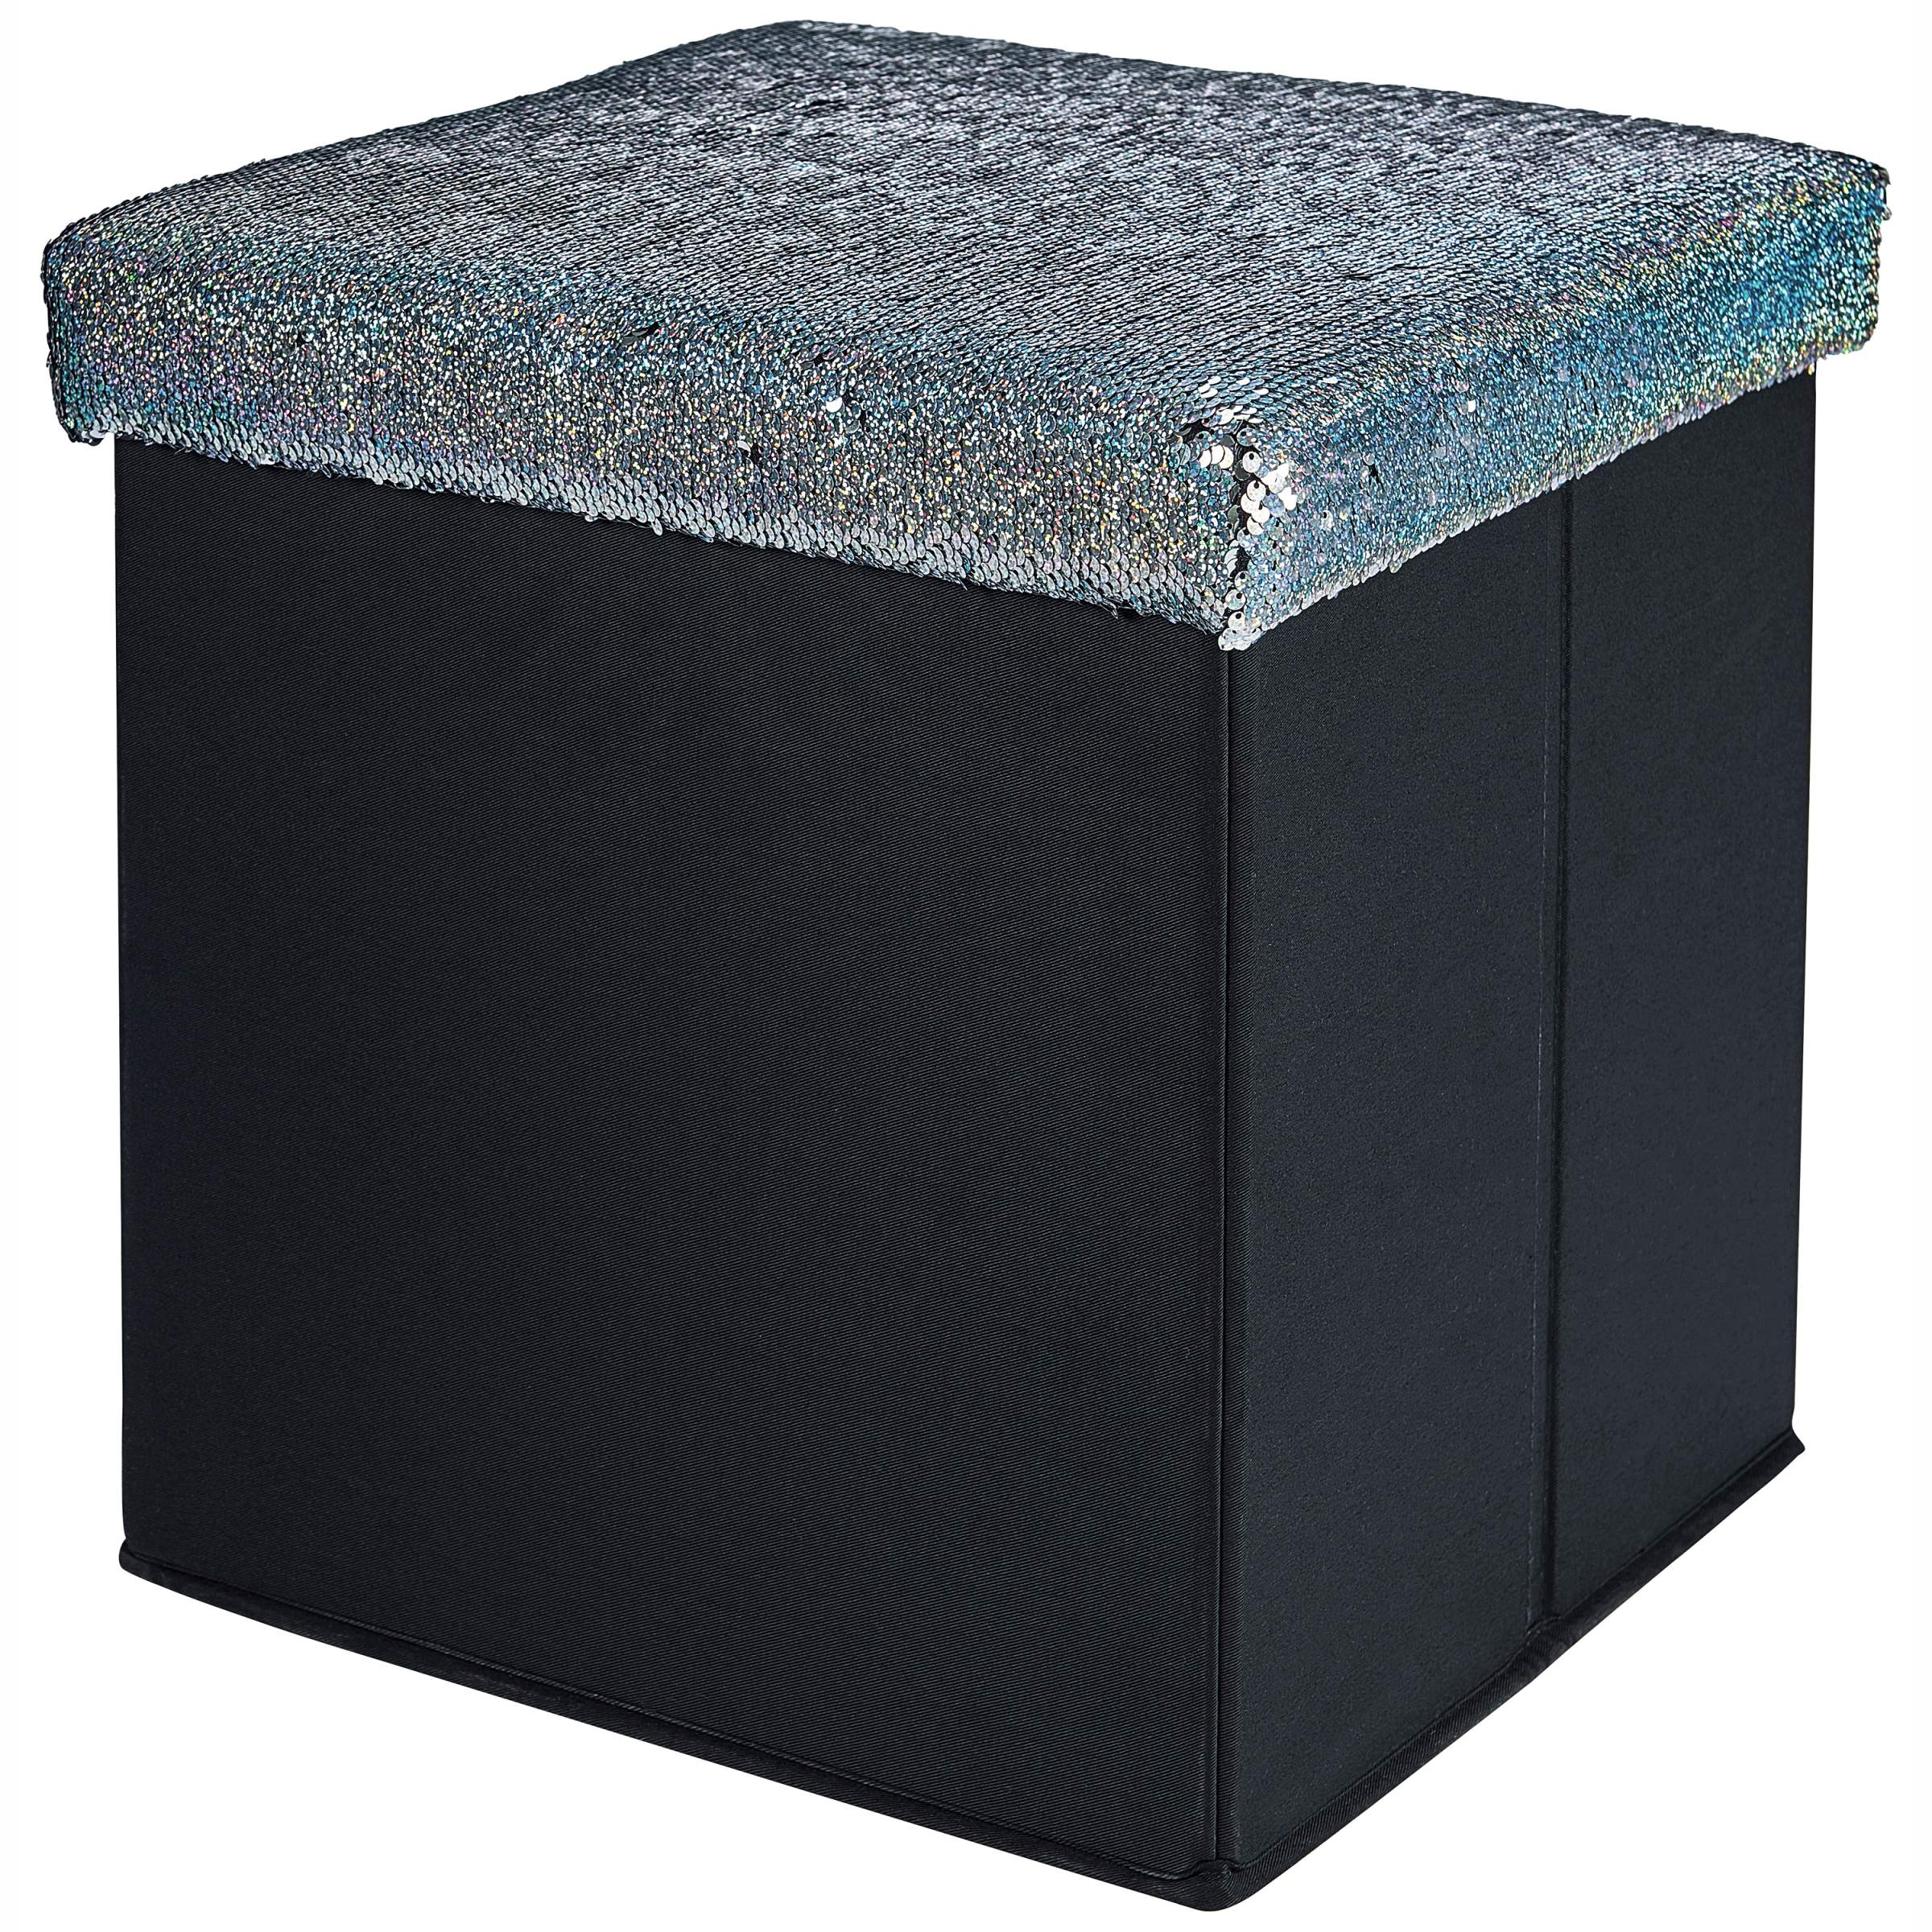 Mainstays Collapsible Storage Ottoman in Glitter Holo